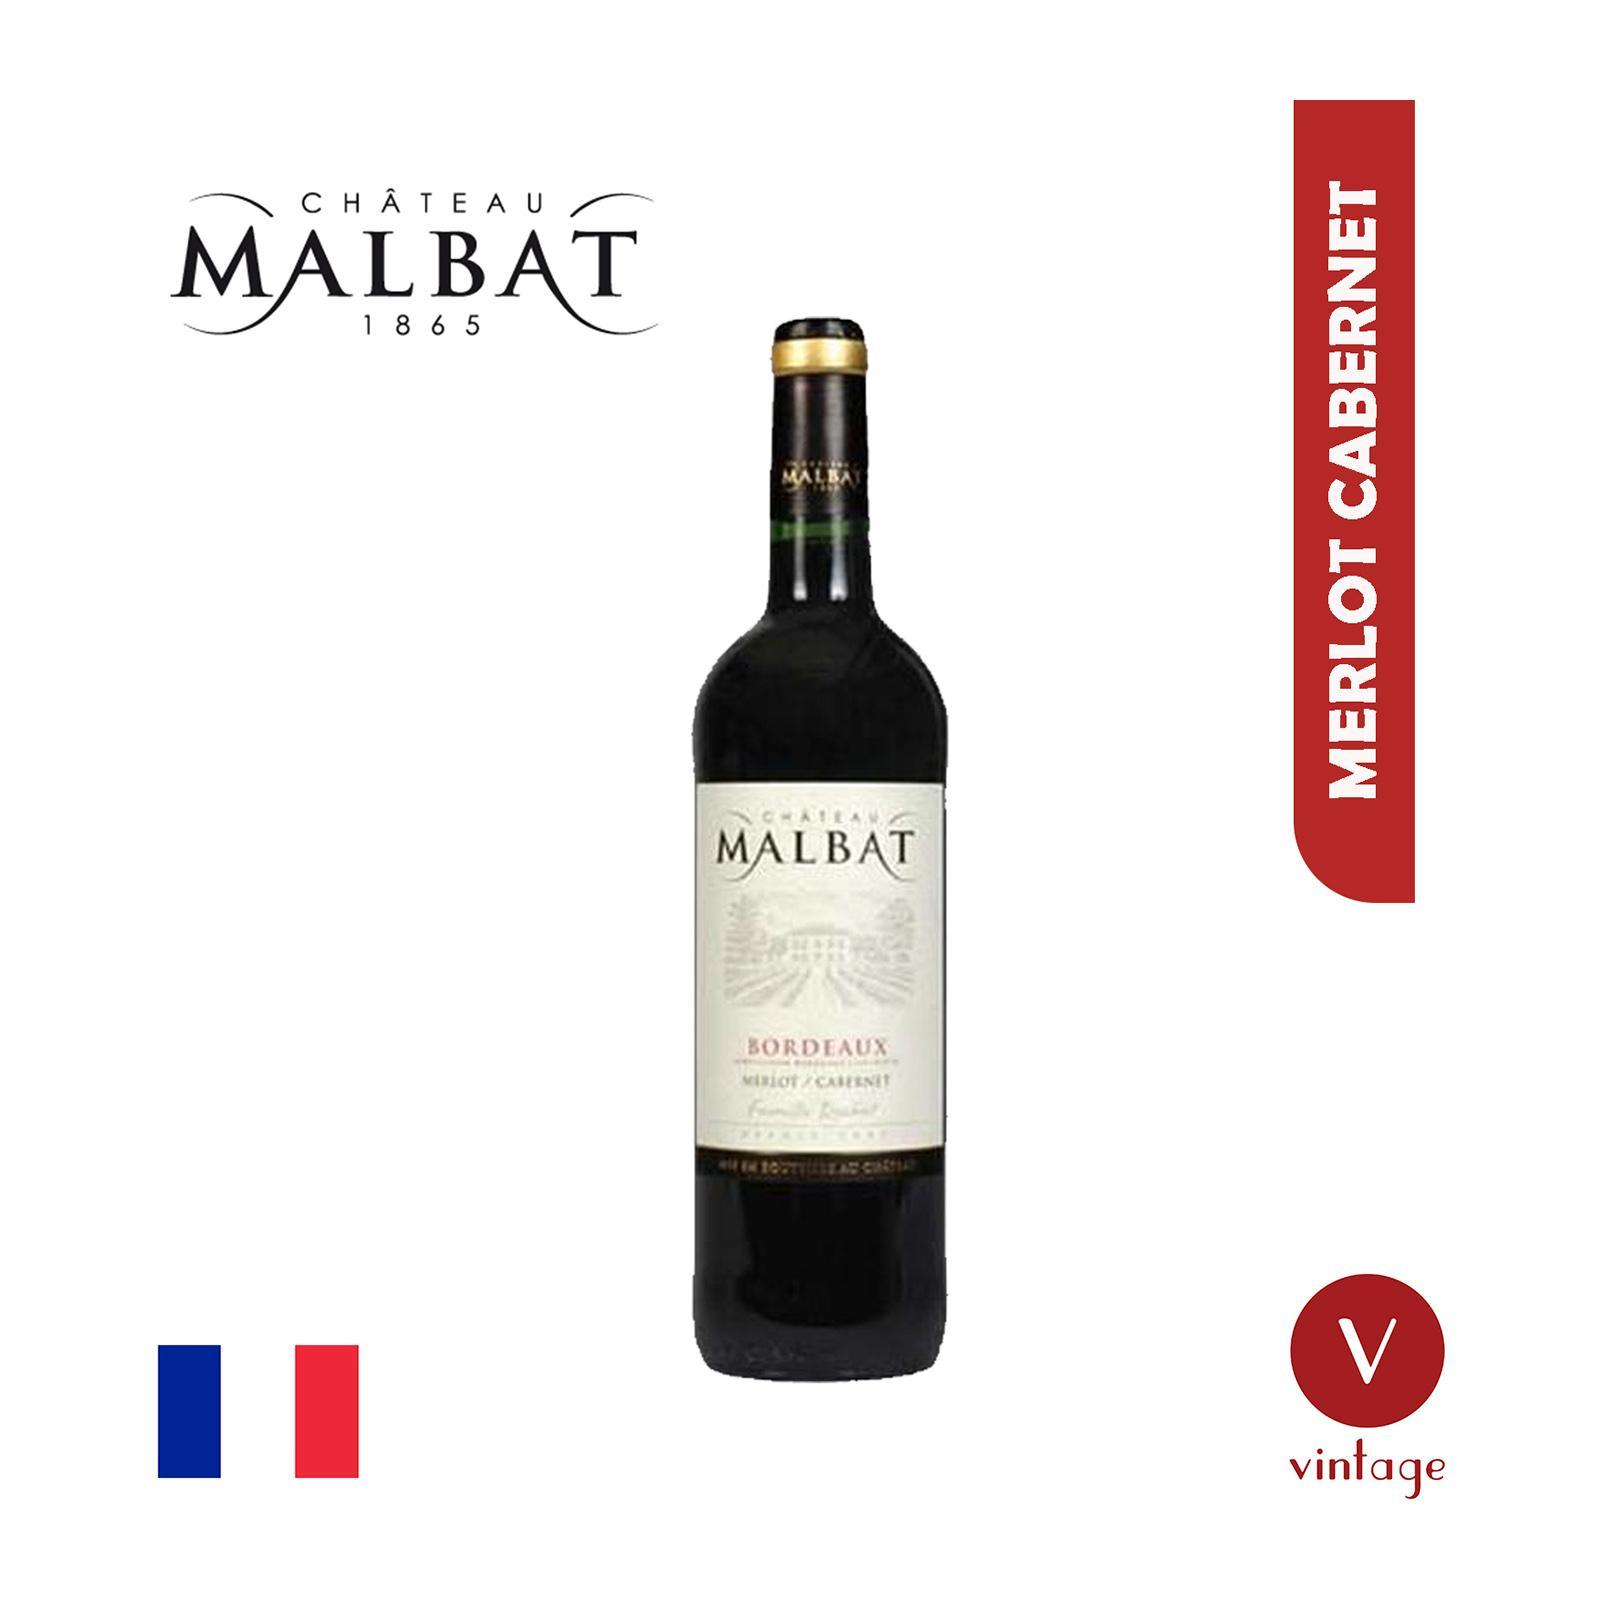 Chateau Malbat - Bordeaux - Merlot and Cabernet - Red Wine - By The Vintage Wine Club